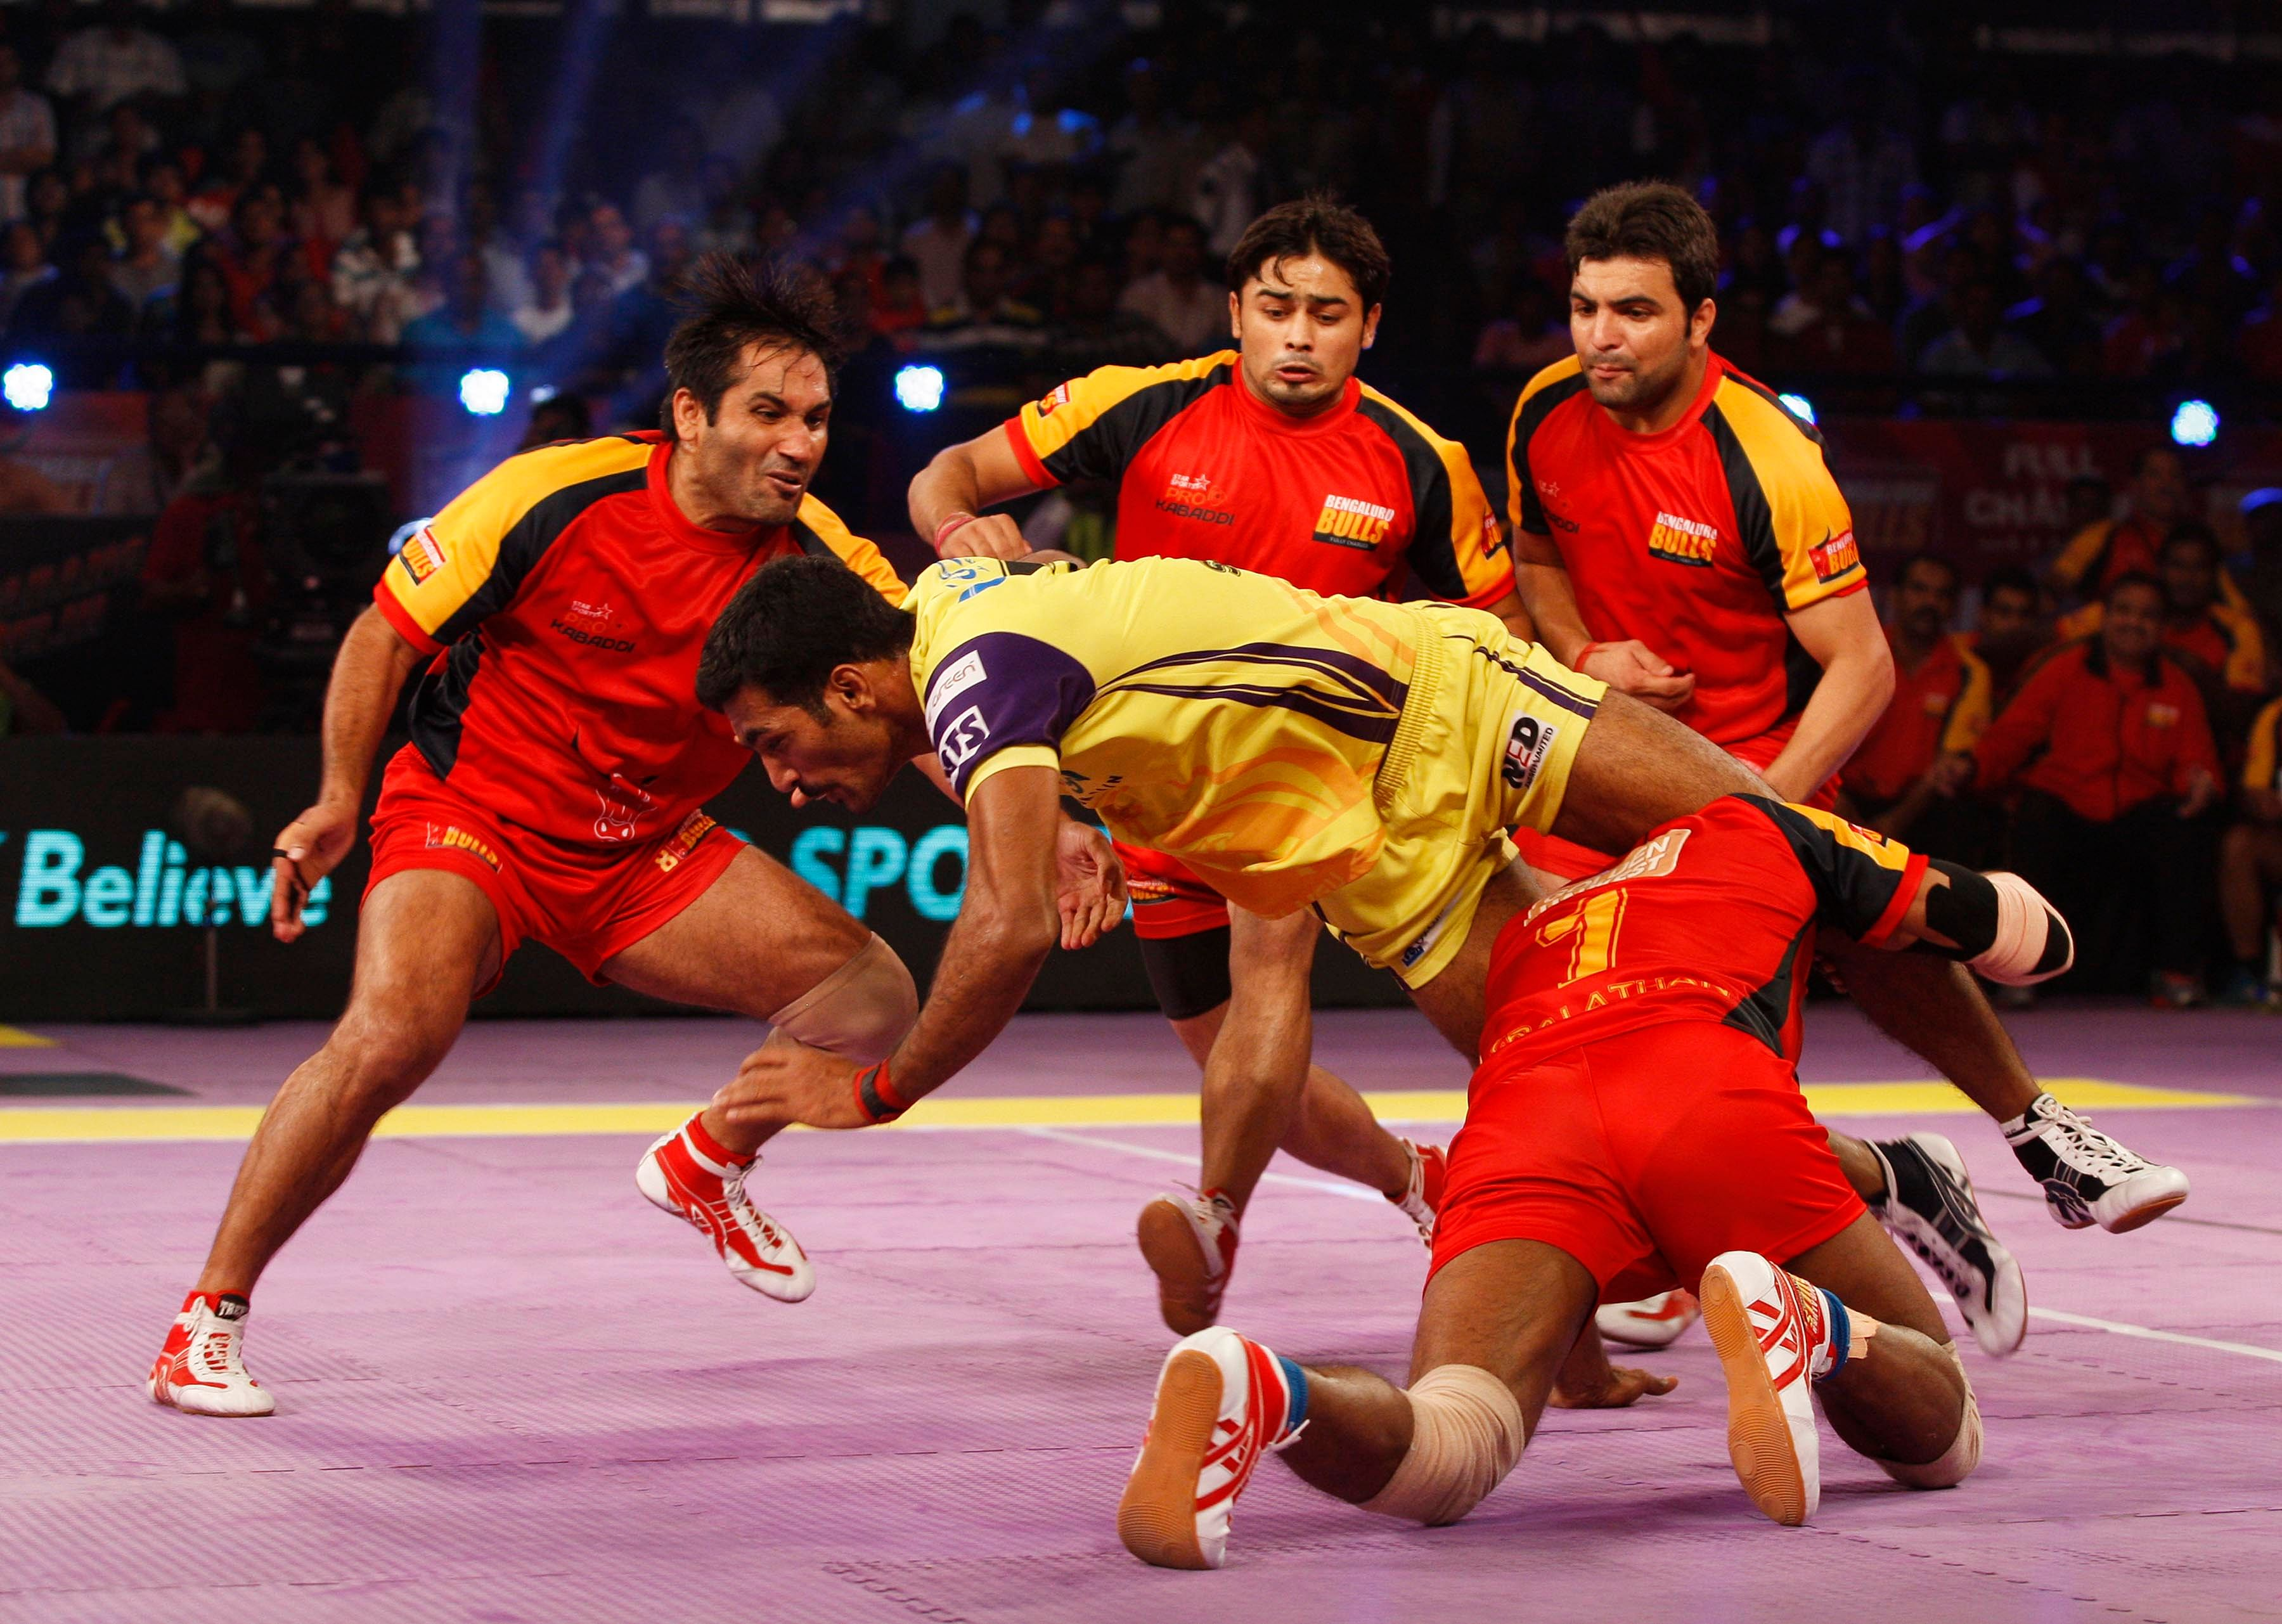 Bengaluru Bulls win by a single point in the final seconds